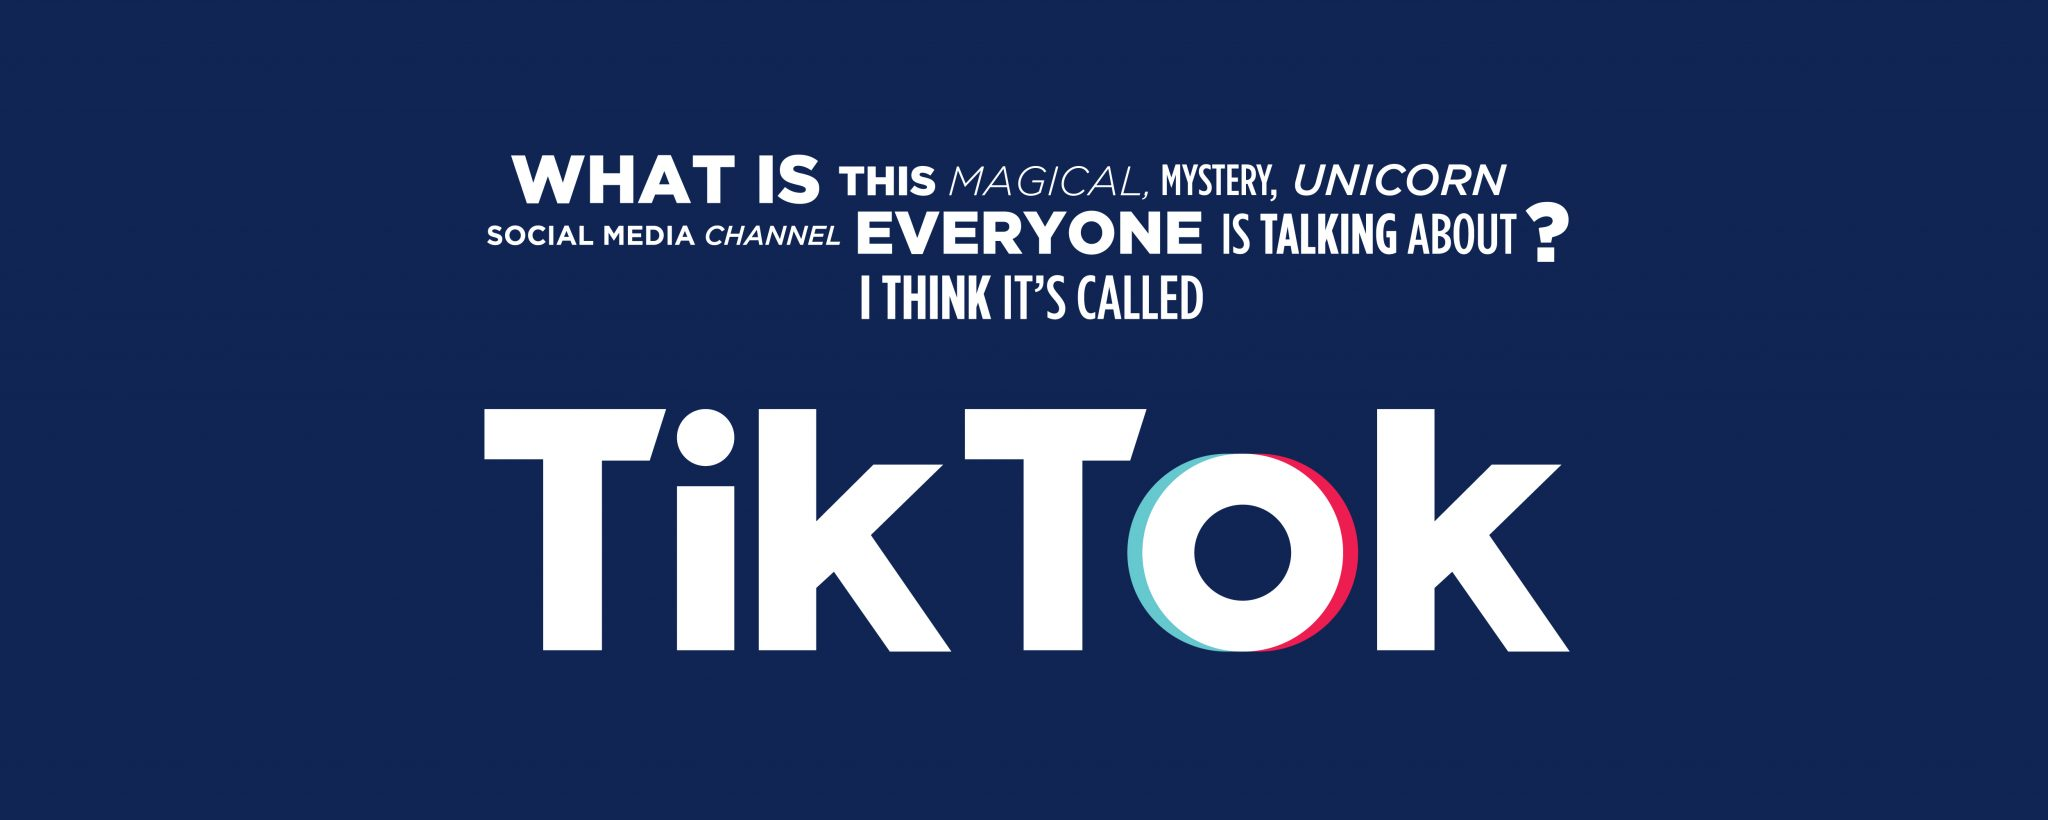 "A graphic with a navy back ground and white text that reads, ""What is this magical, mystery, unicorn social media channel everyone is talking about? I think it's called TikTok."""